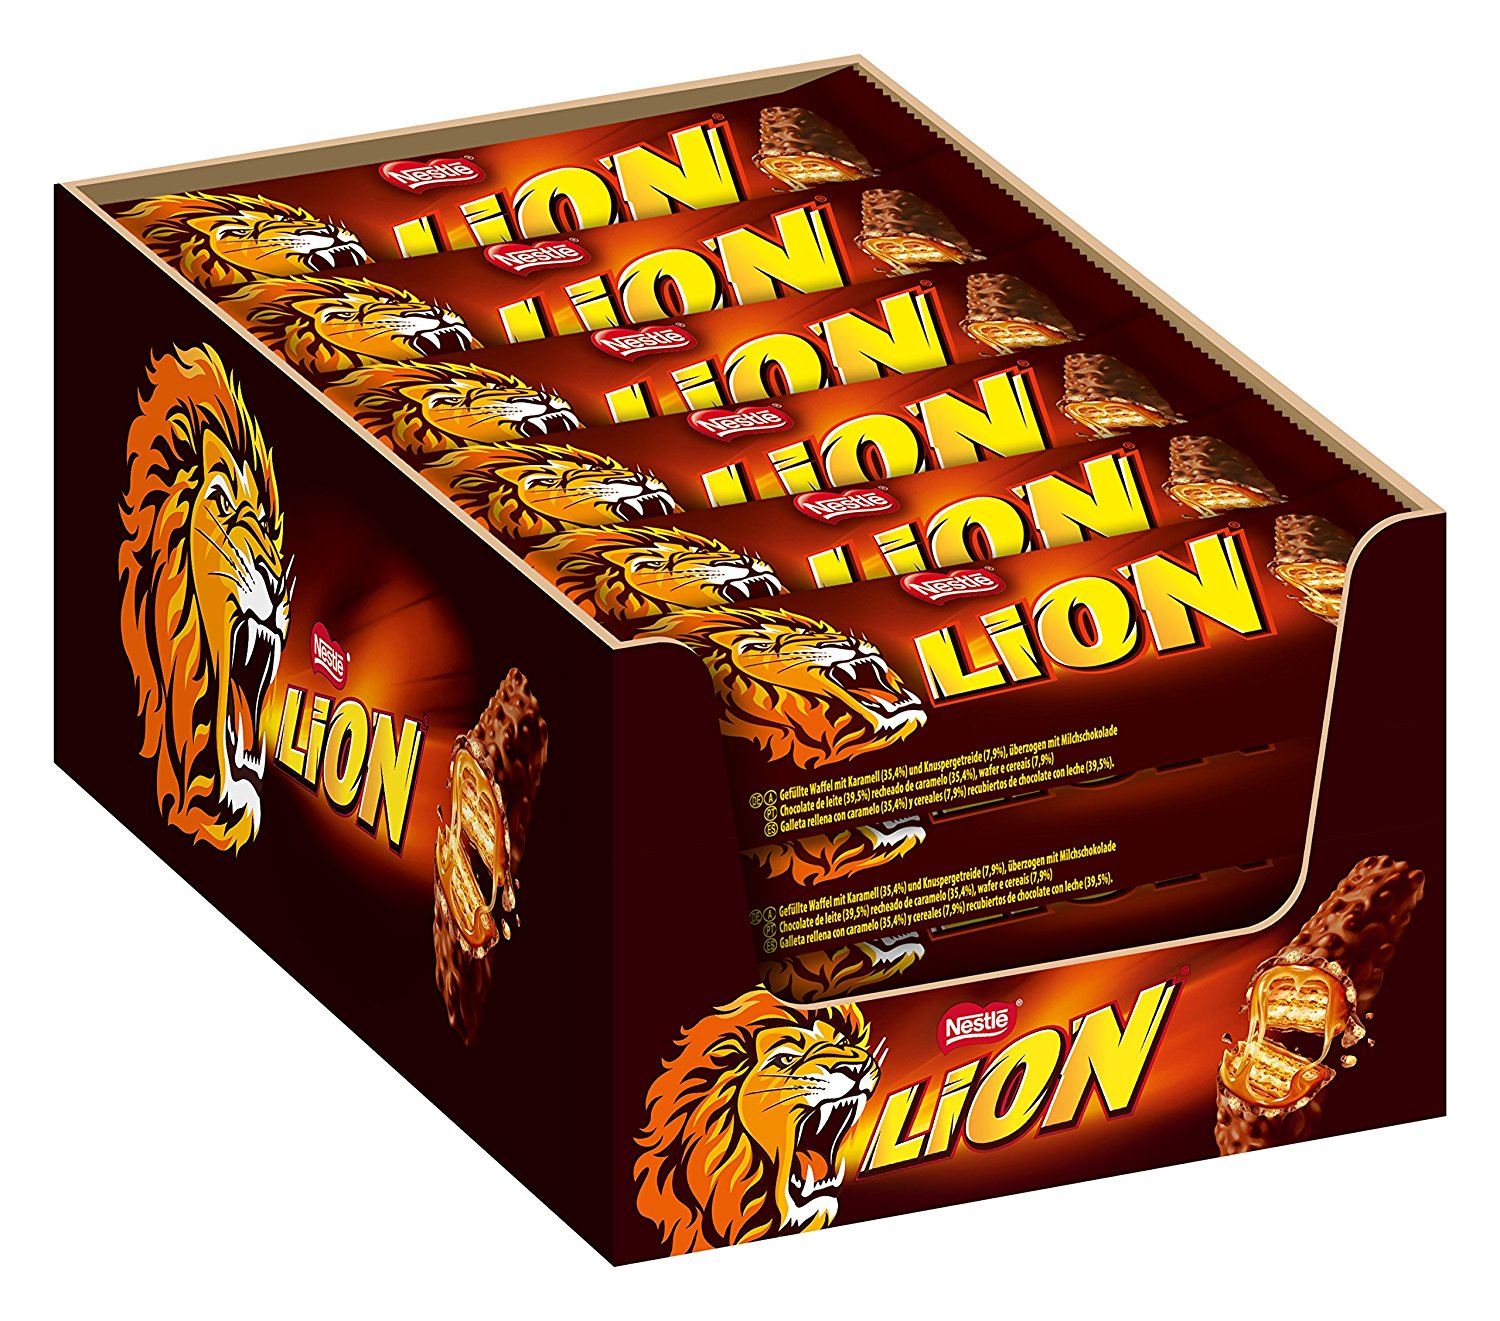 Nestle Lion Schokoriegel amazon Angebot